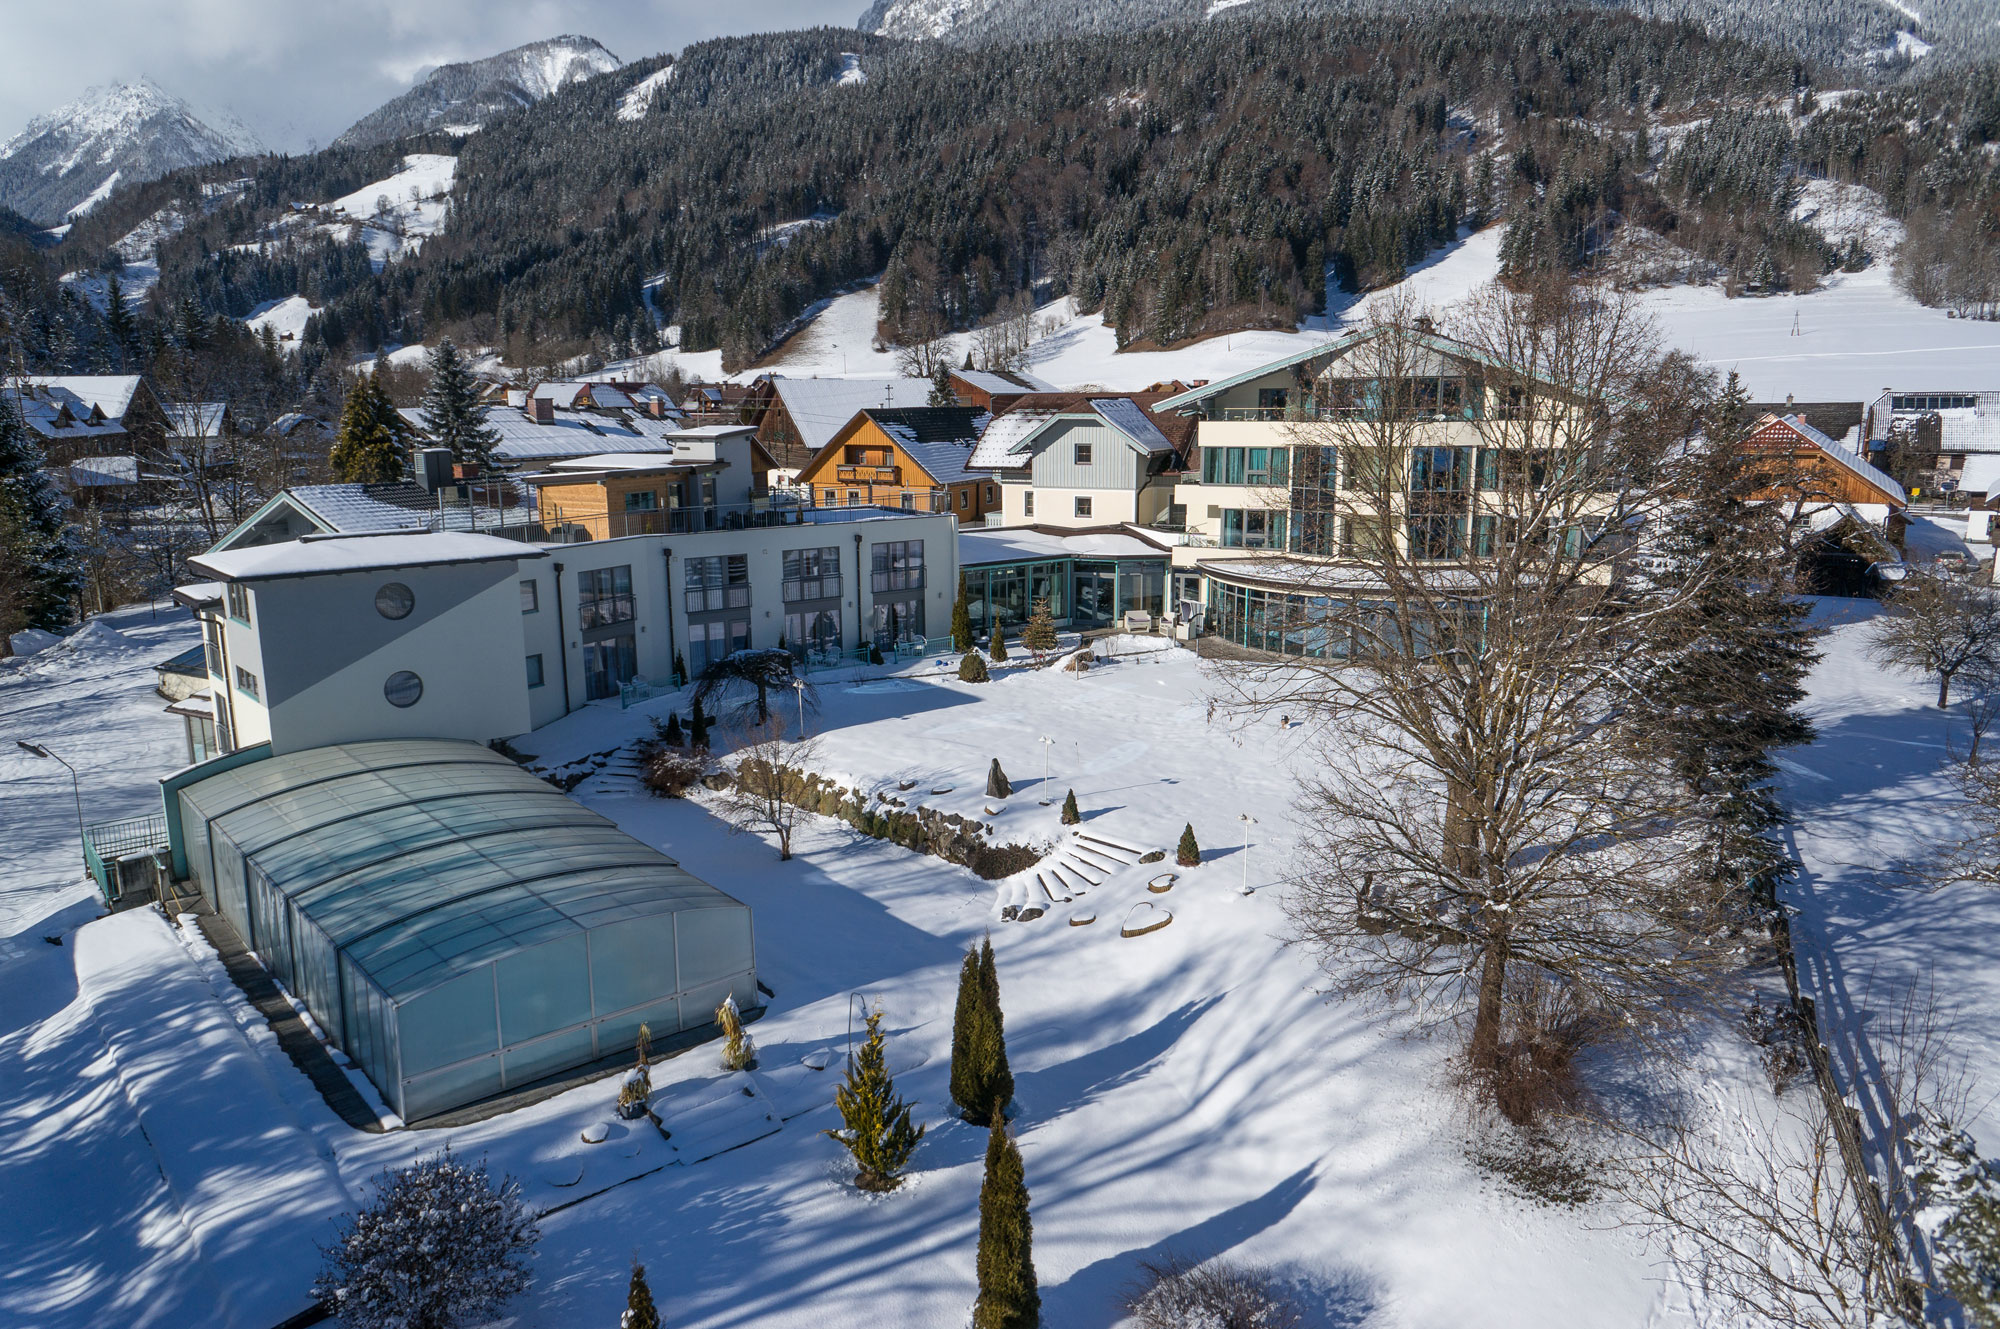 hotel-hartweger-winter-2